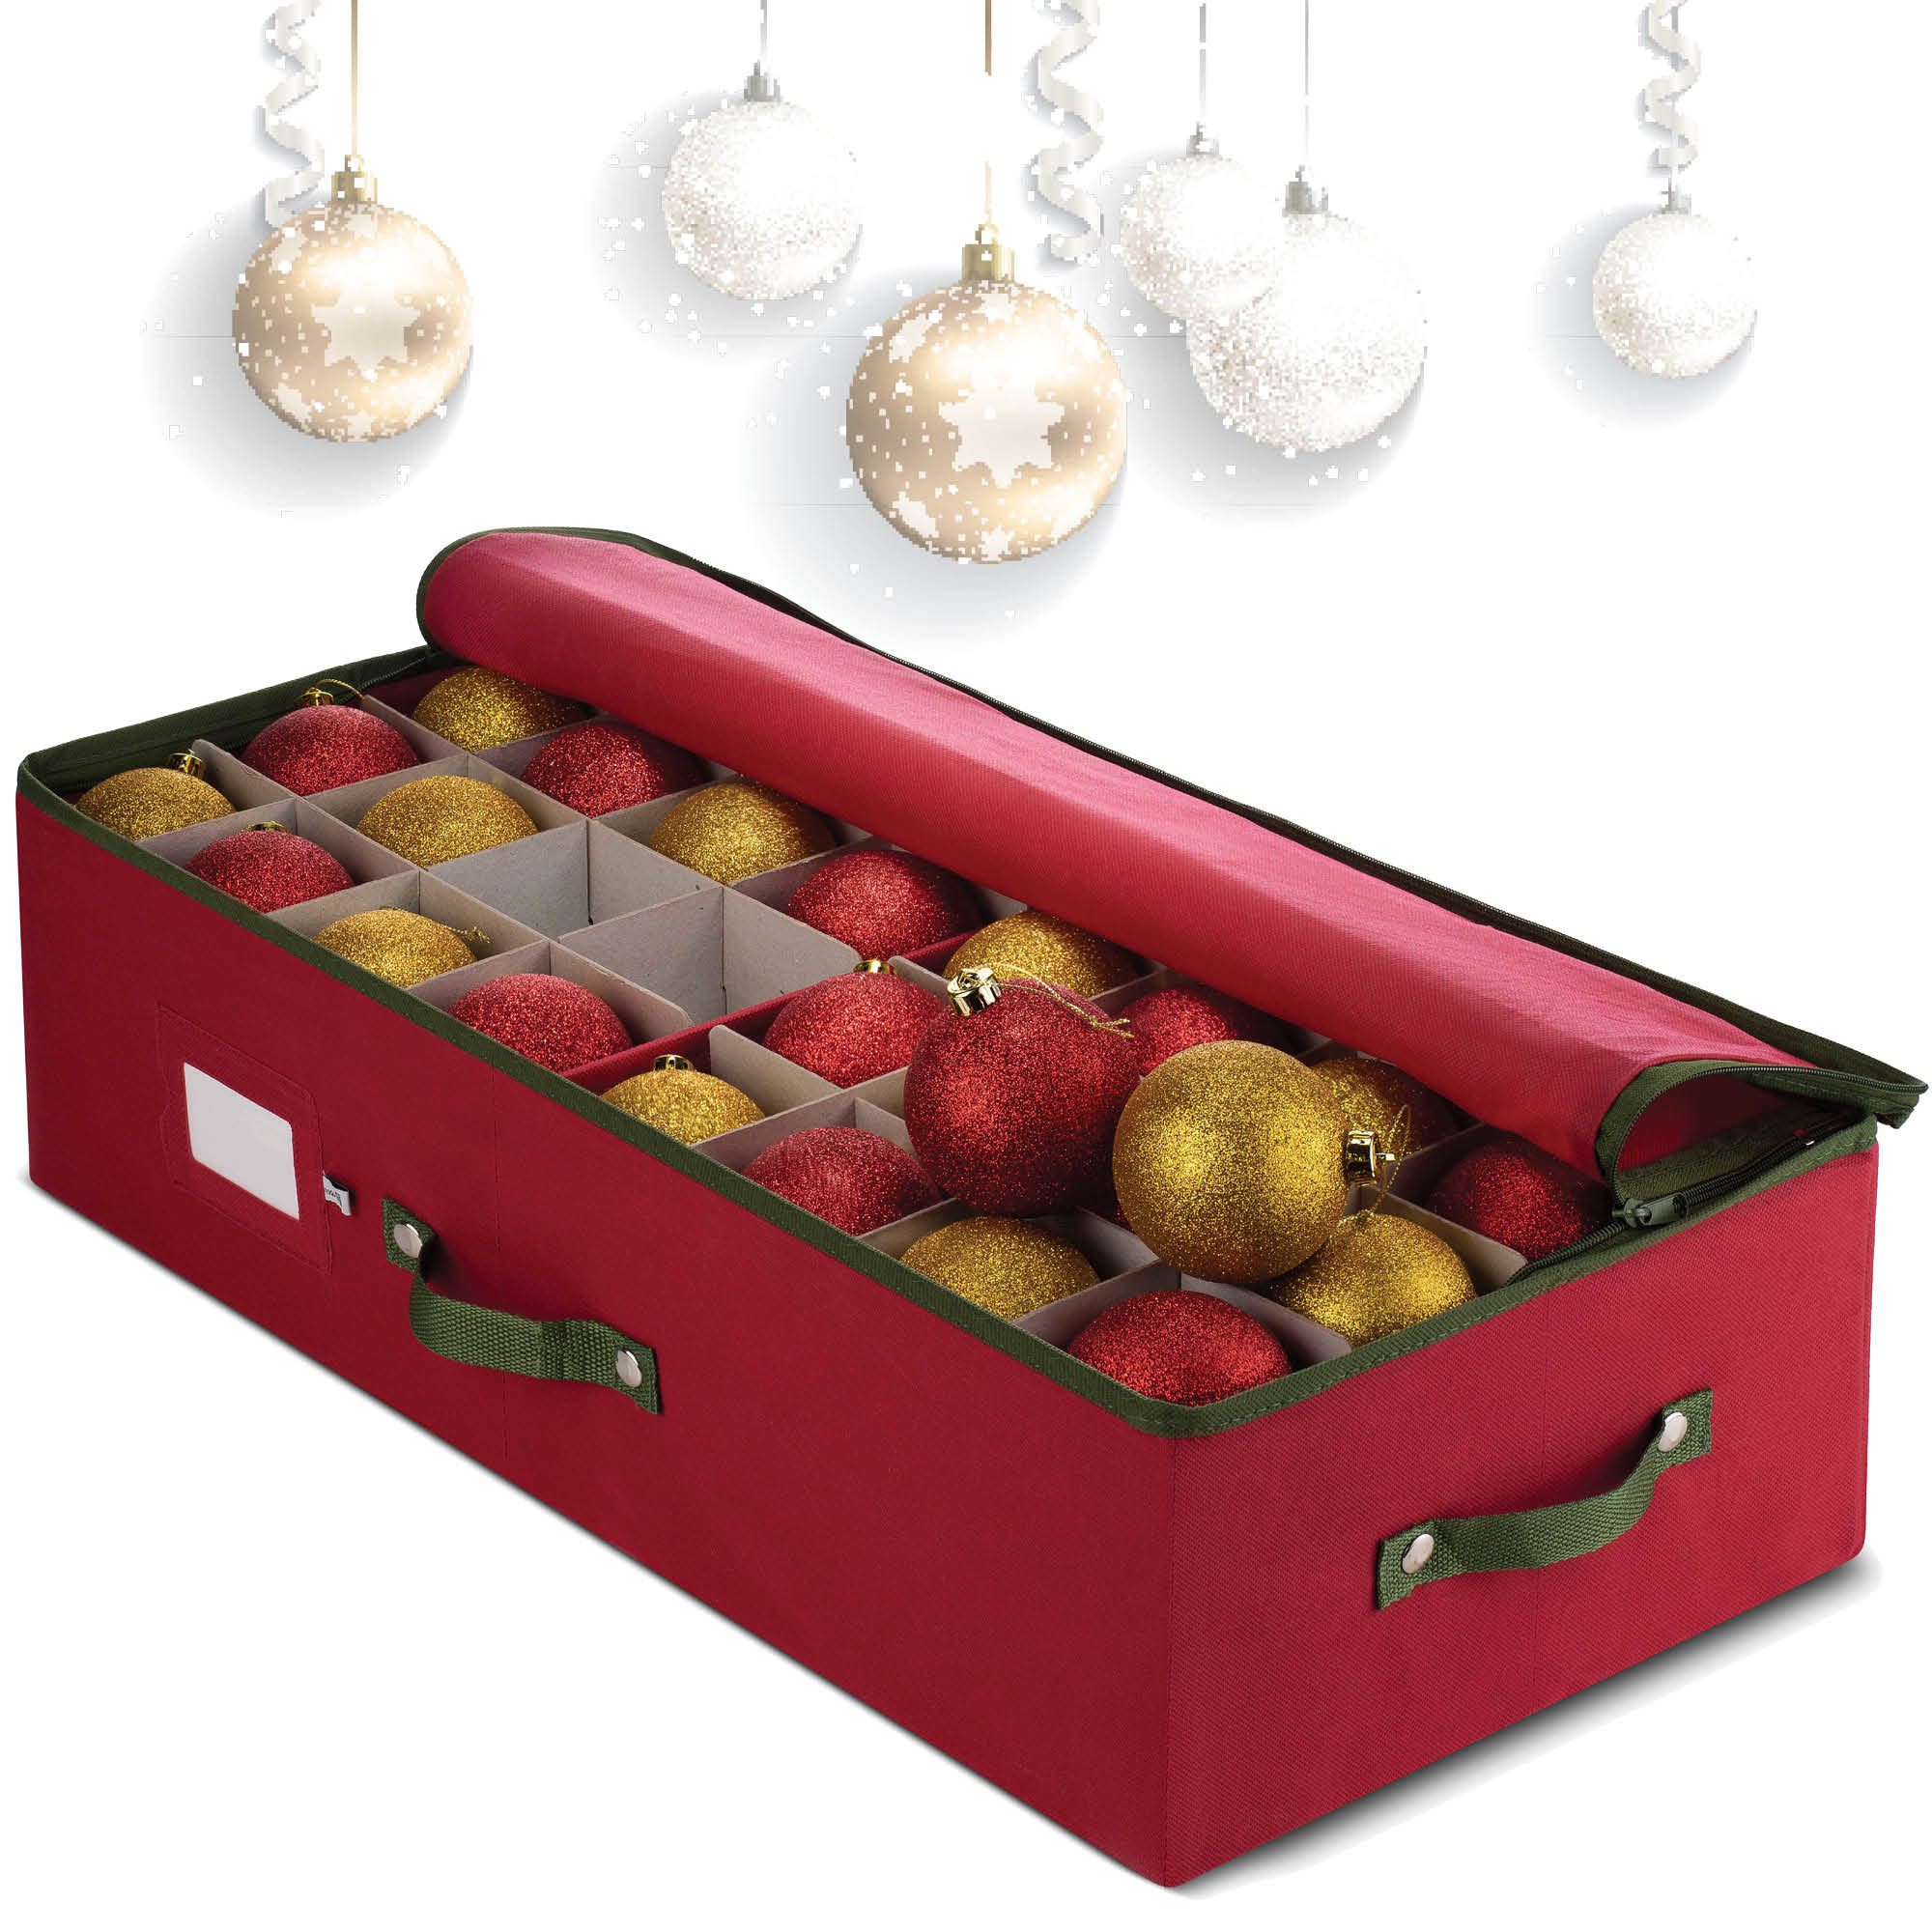 Christmas 64 Baubles Holder Storage Box for Christmas Decorations Bag with Carry Handles